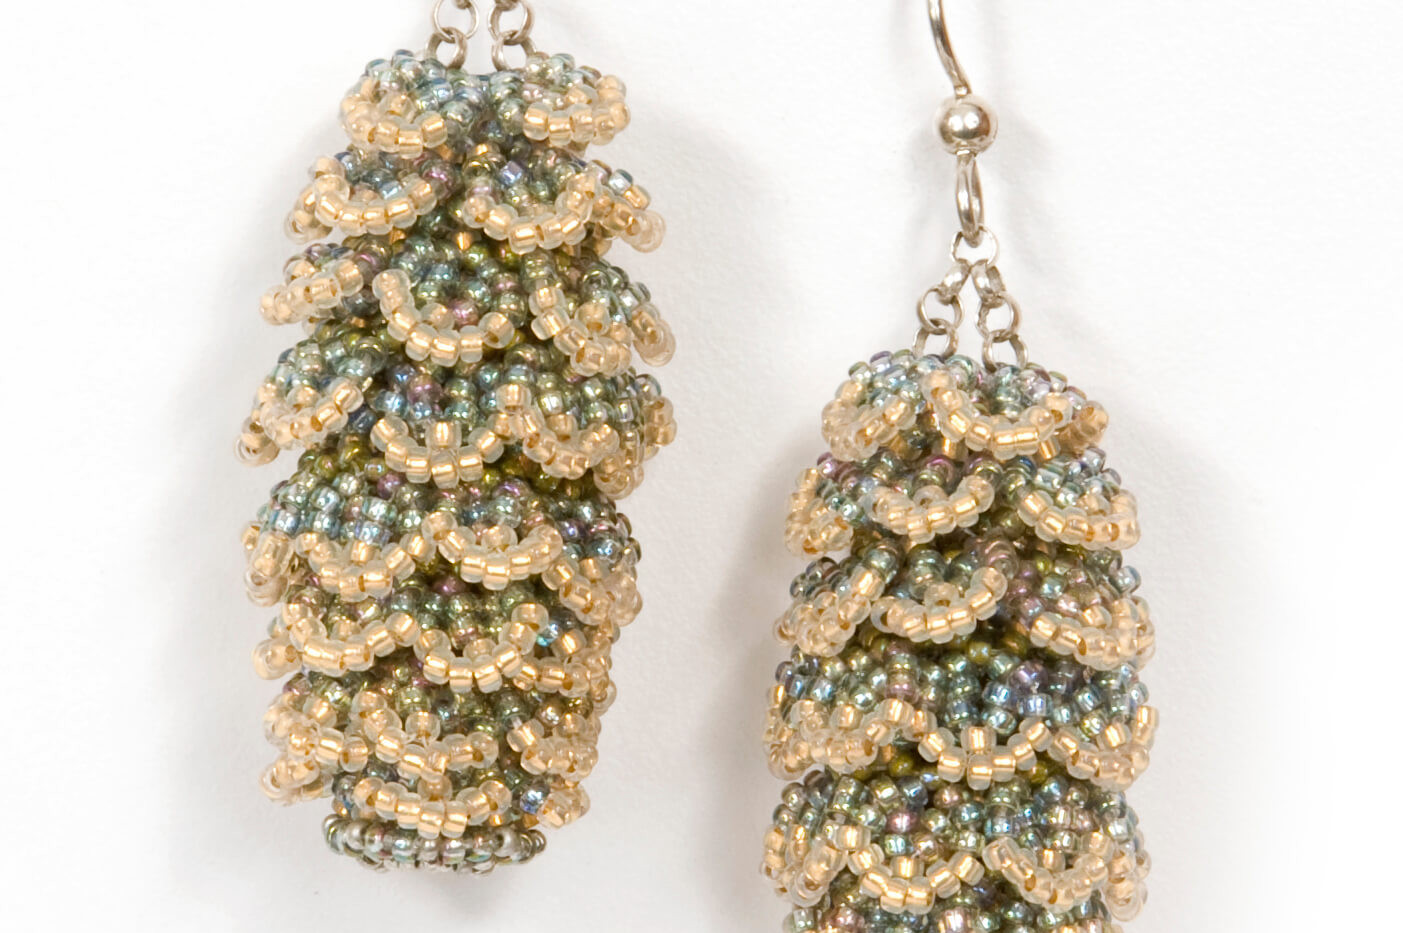 Pining Earrings in Light Blue and Green